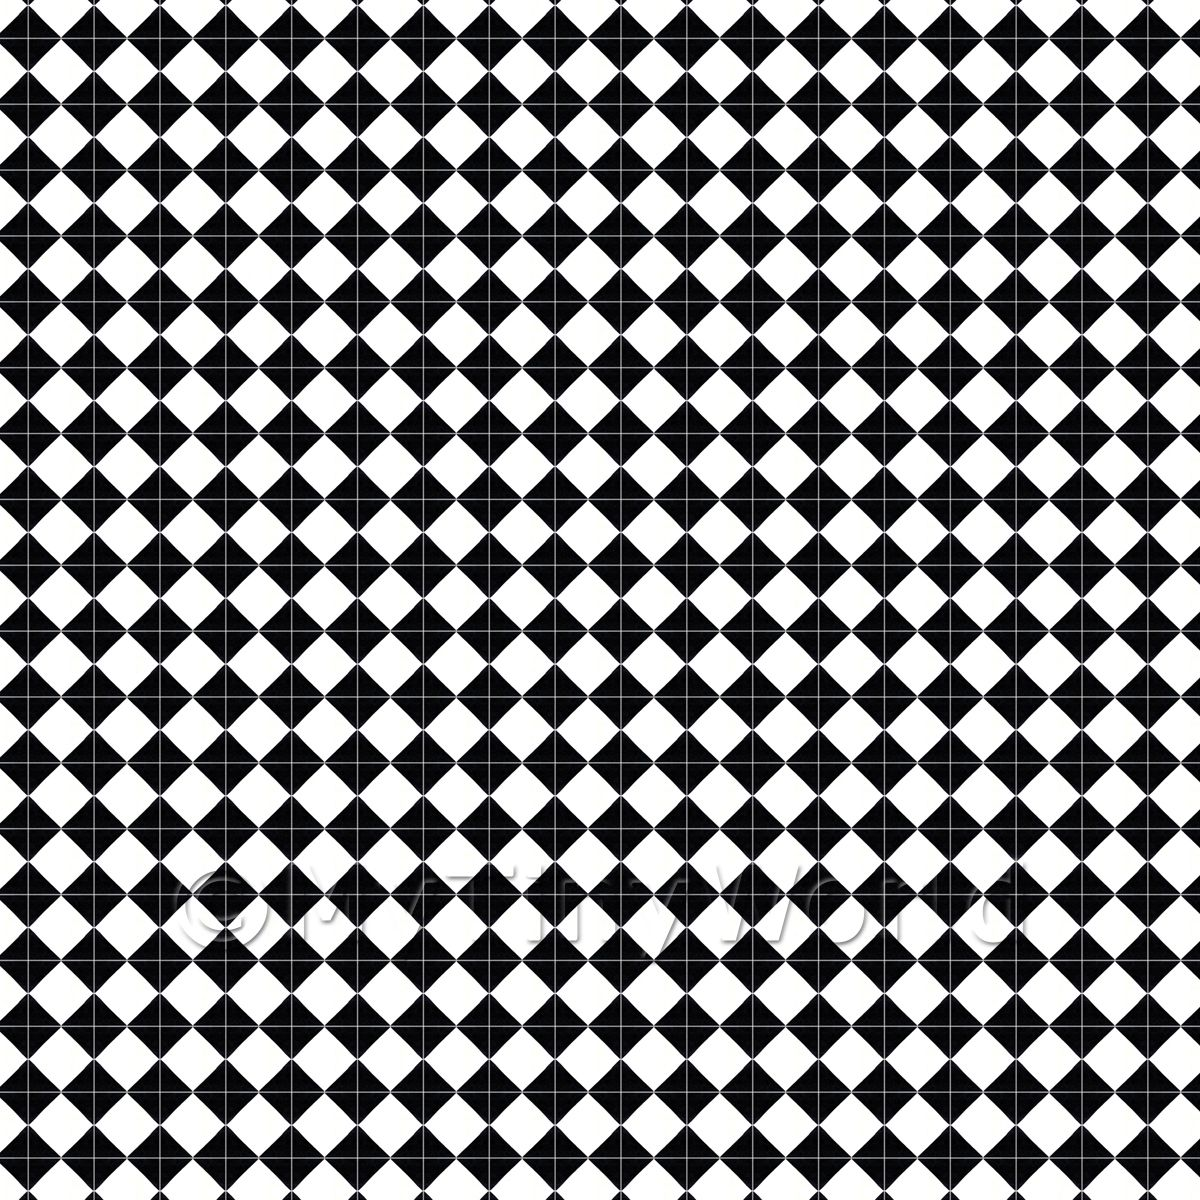 1:24th Classic Small Black And White Diamond Design Tile Sheet